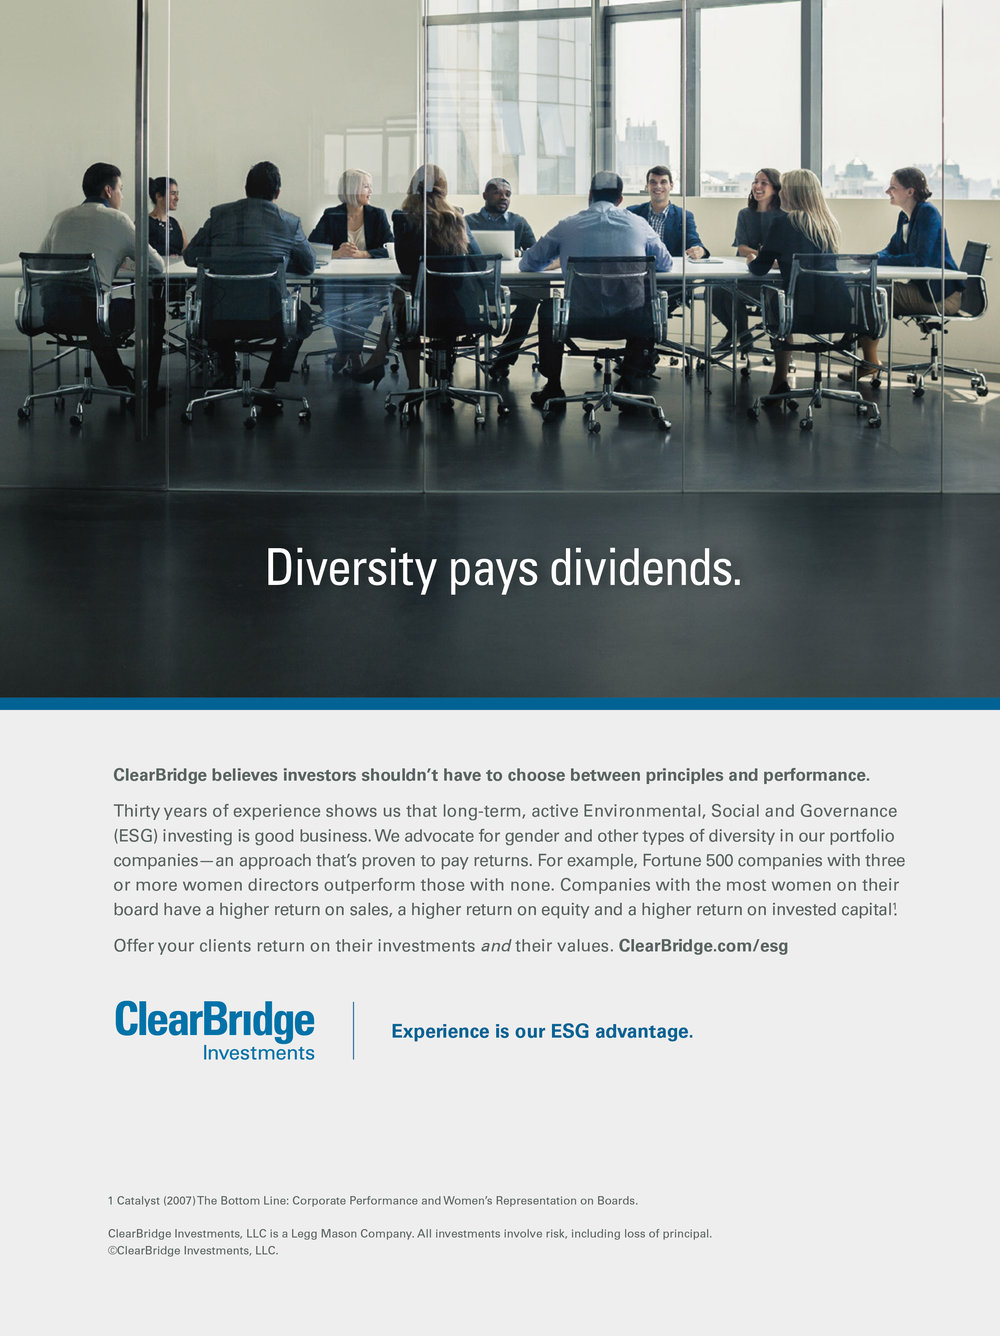 clearbridge_investments_ESG_mysisterfred_advertising_campaign_2017_diversity.jpg